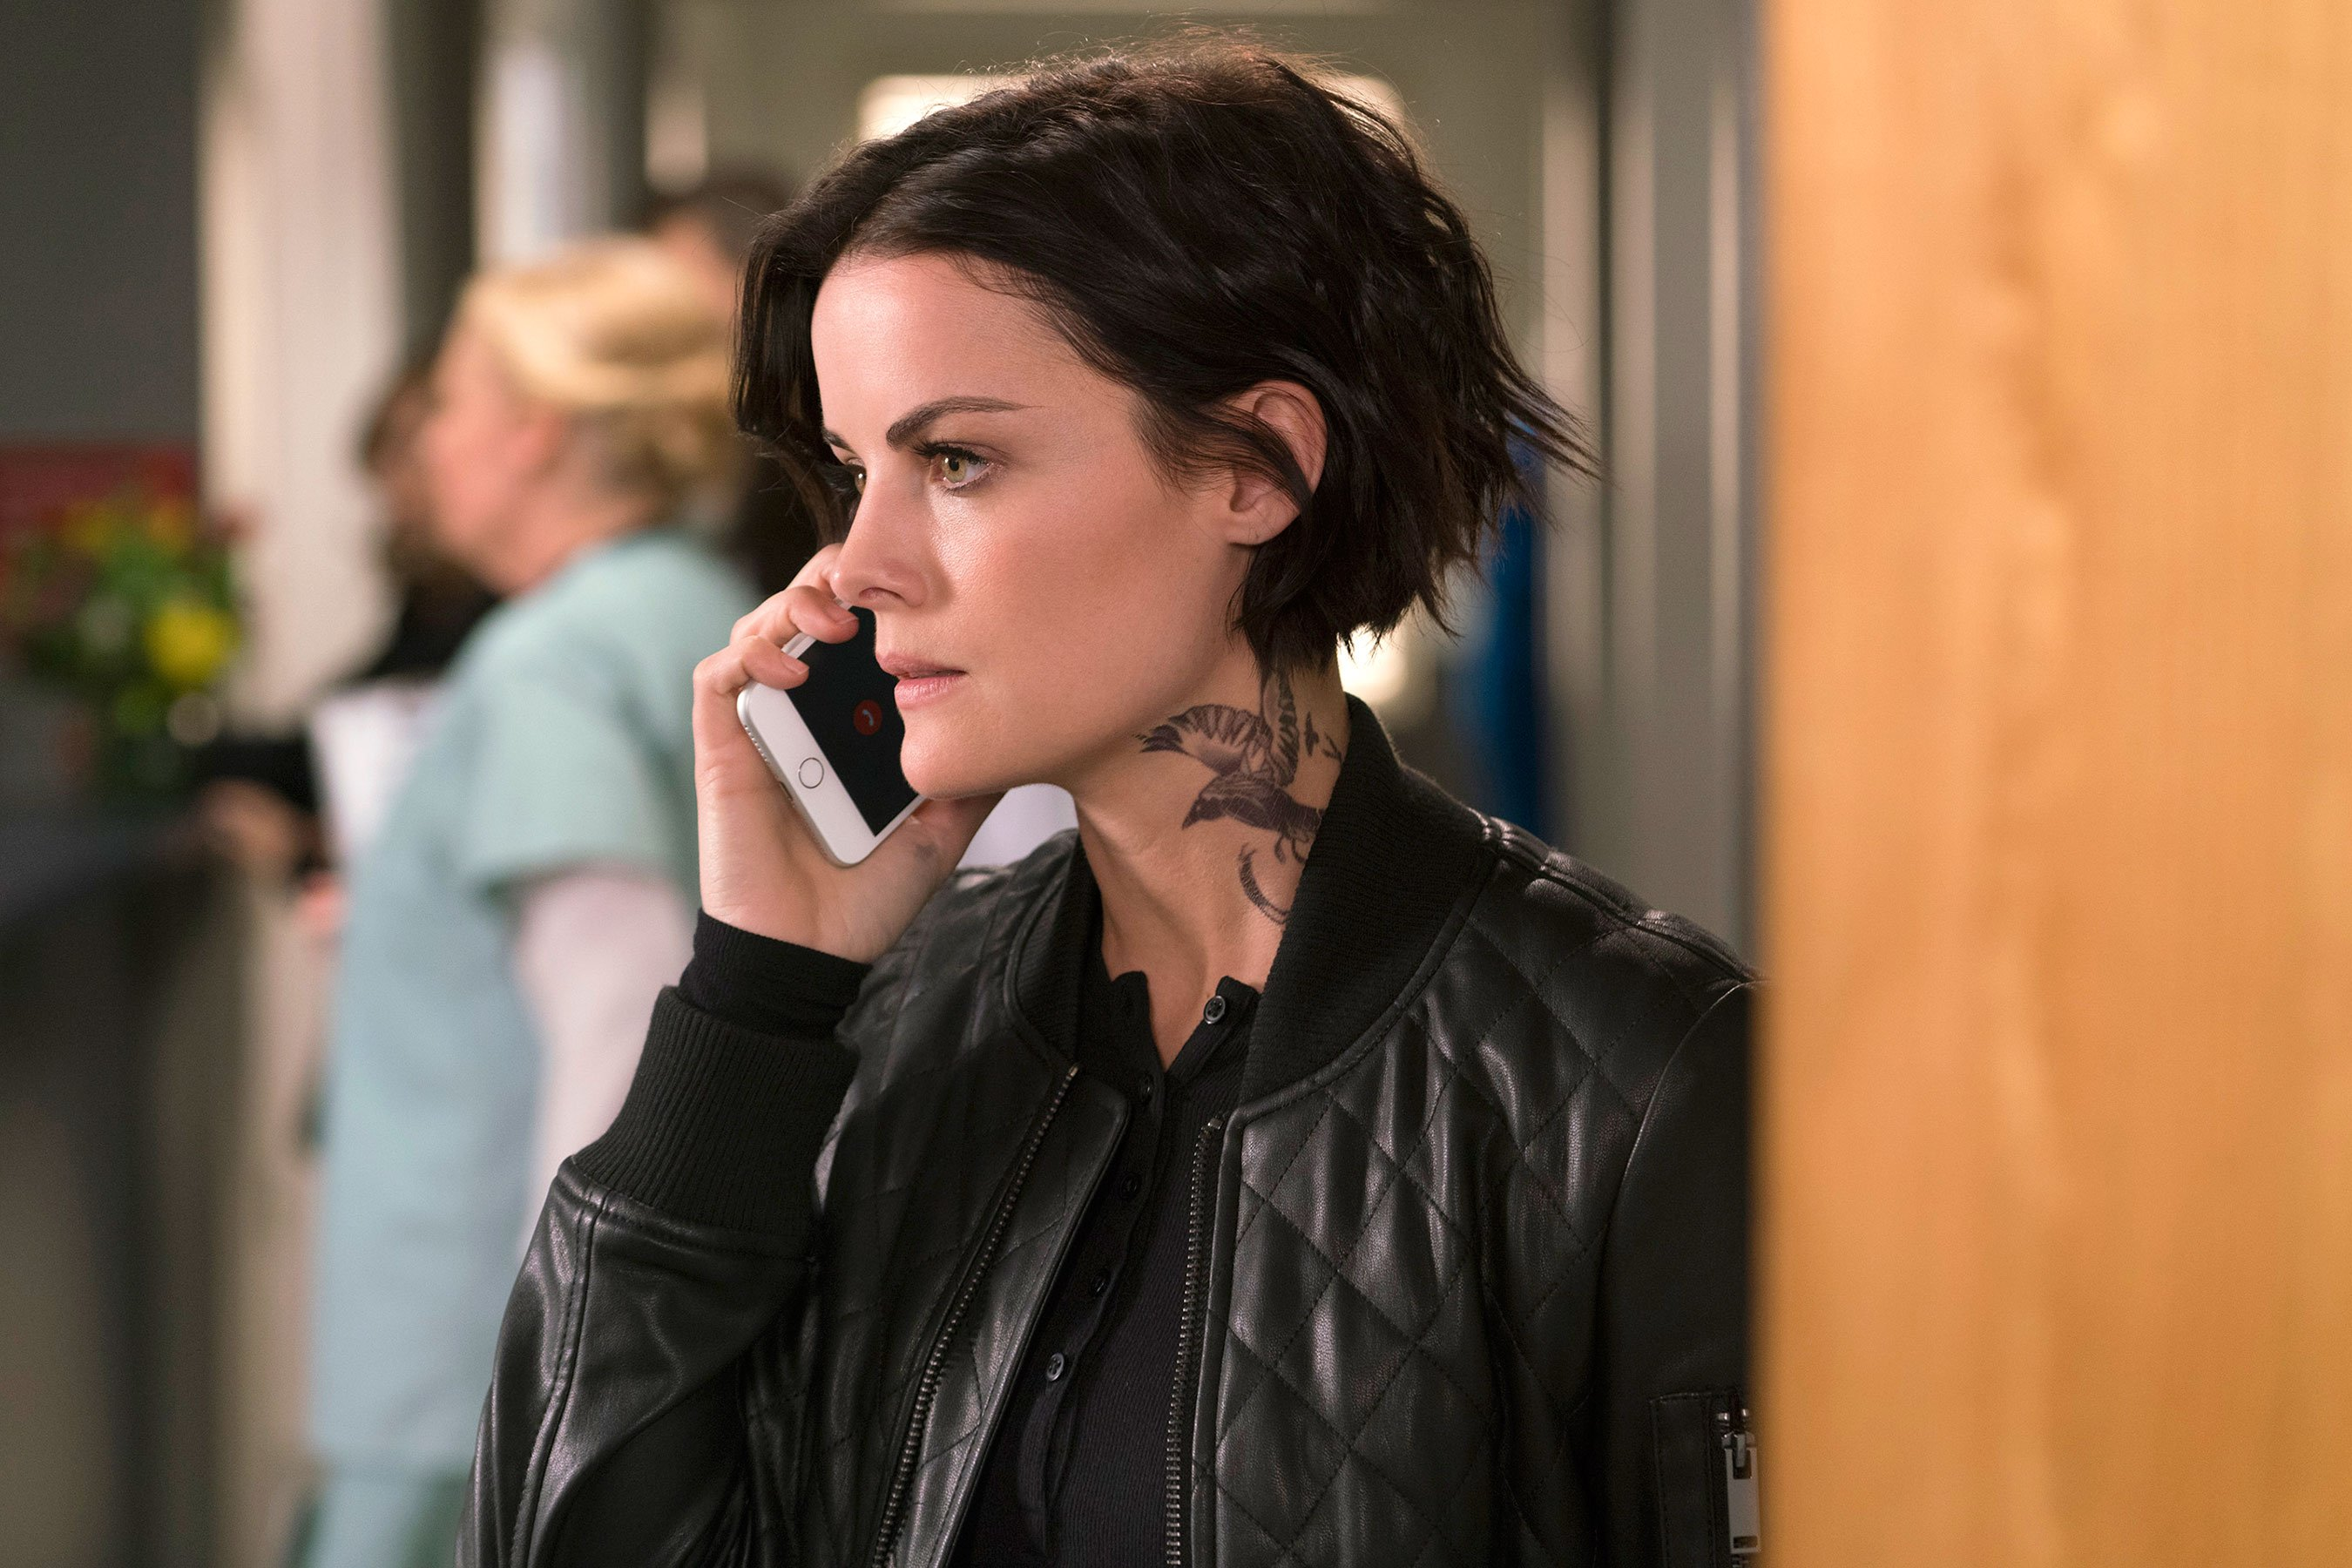 'Blindspot': Jane makes heartbreaking decision over Weller reveal